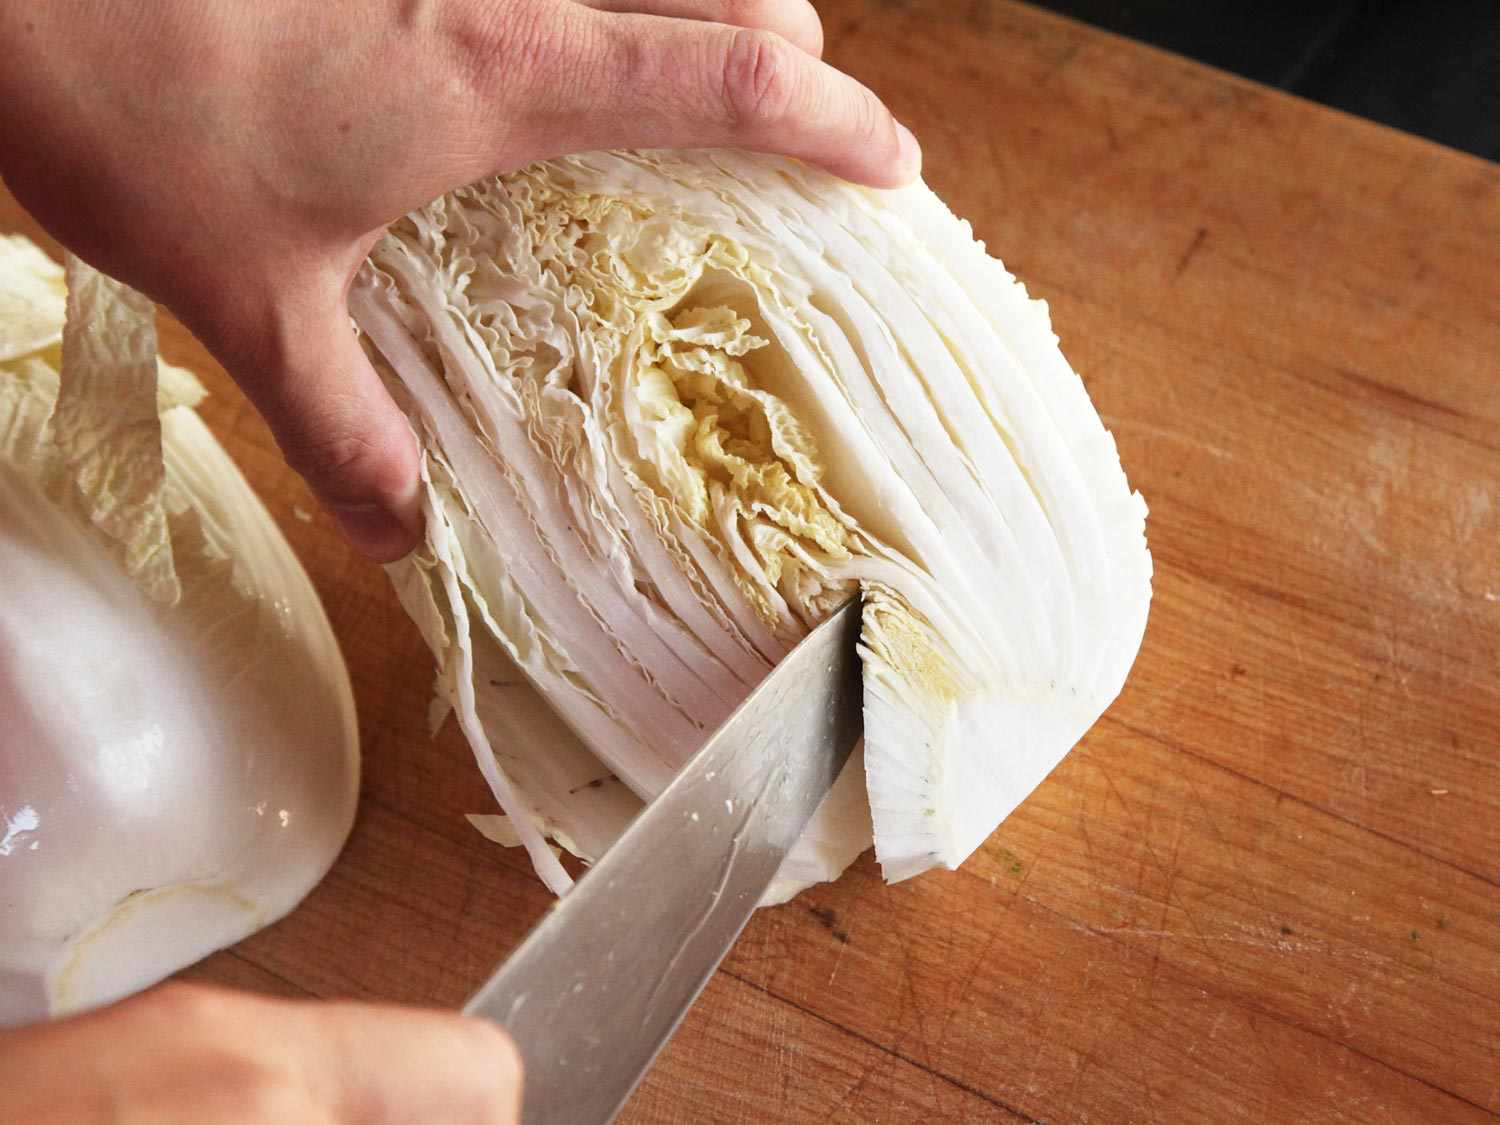 Cutting out the core of a head of Napa cabbage with a chef's knife.